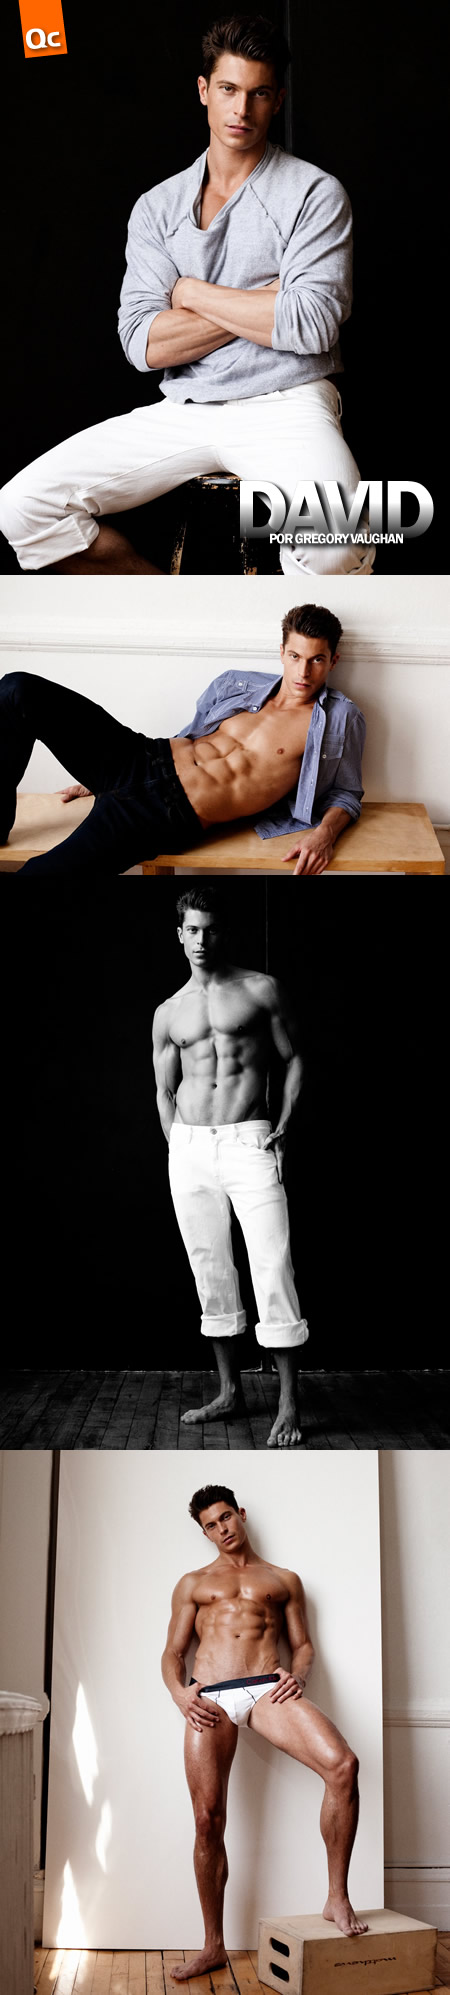 Greg Vaughan: David Pullman